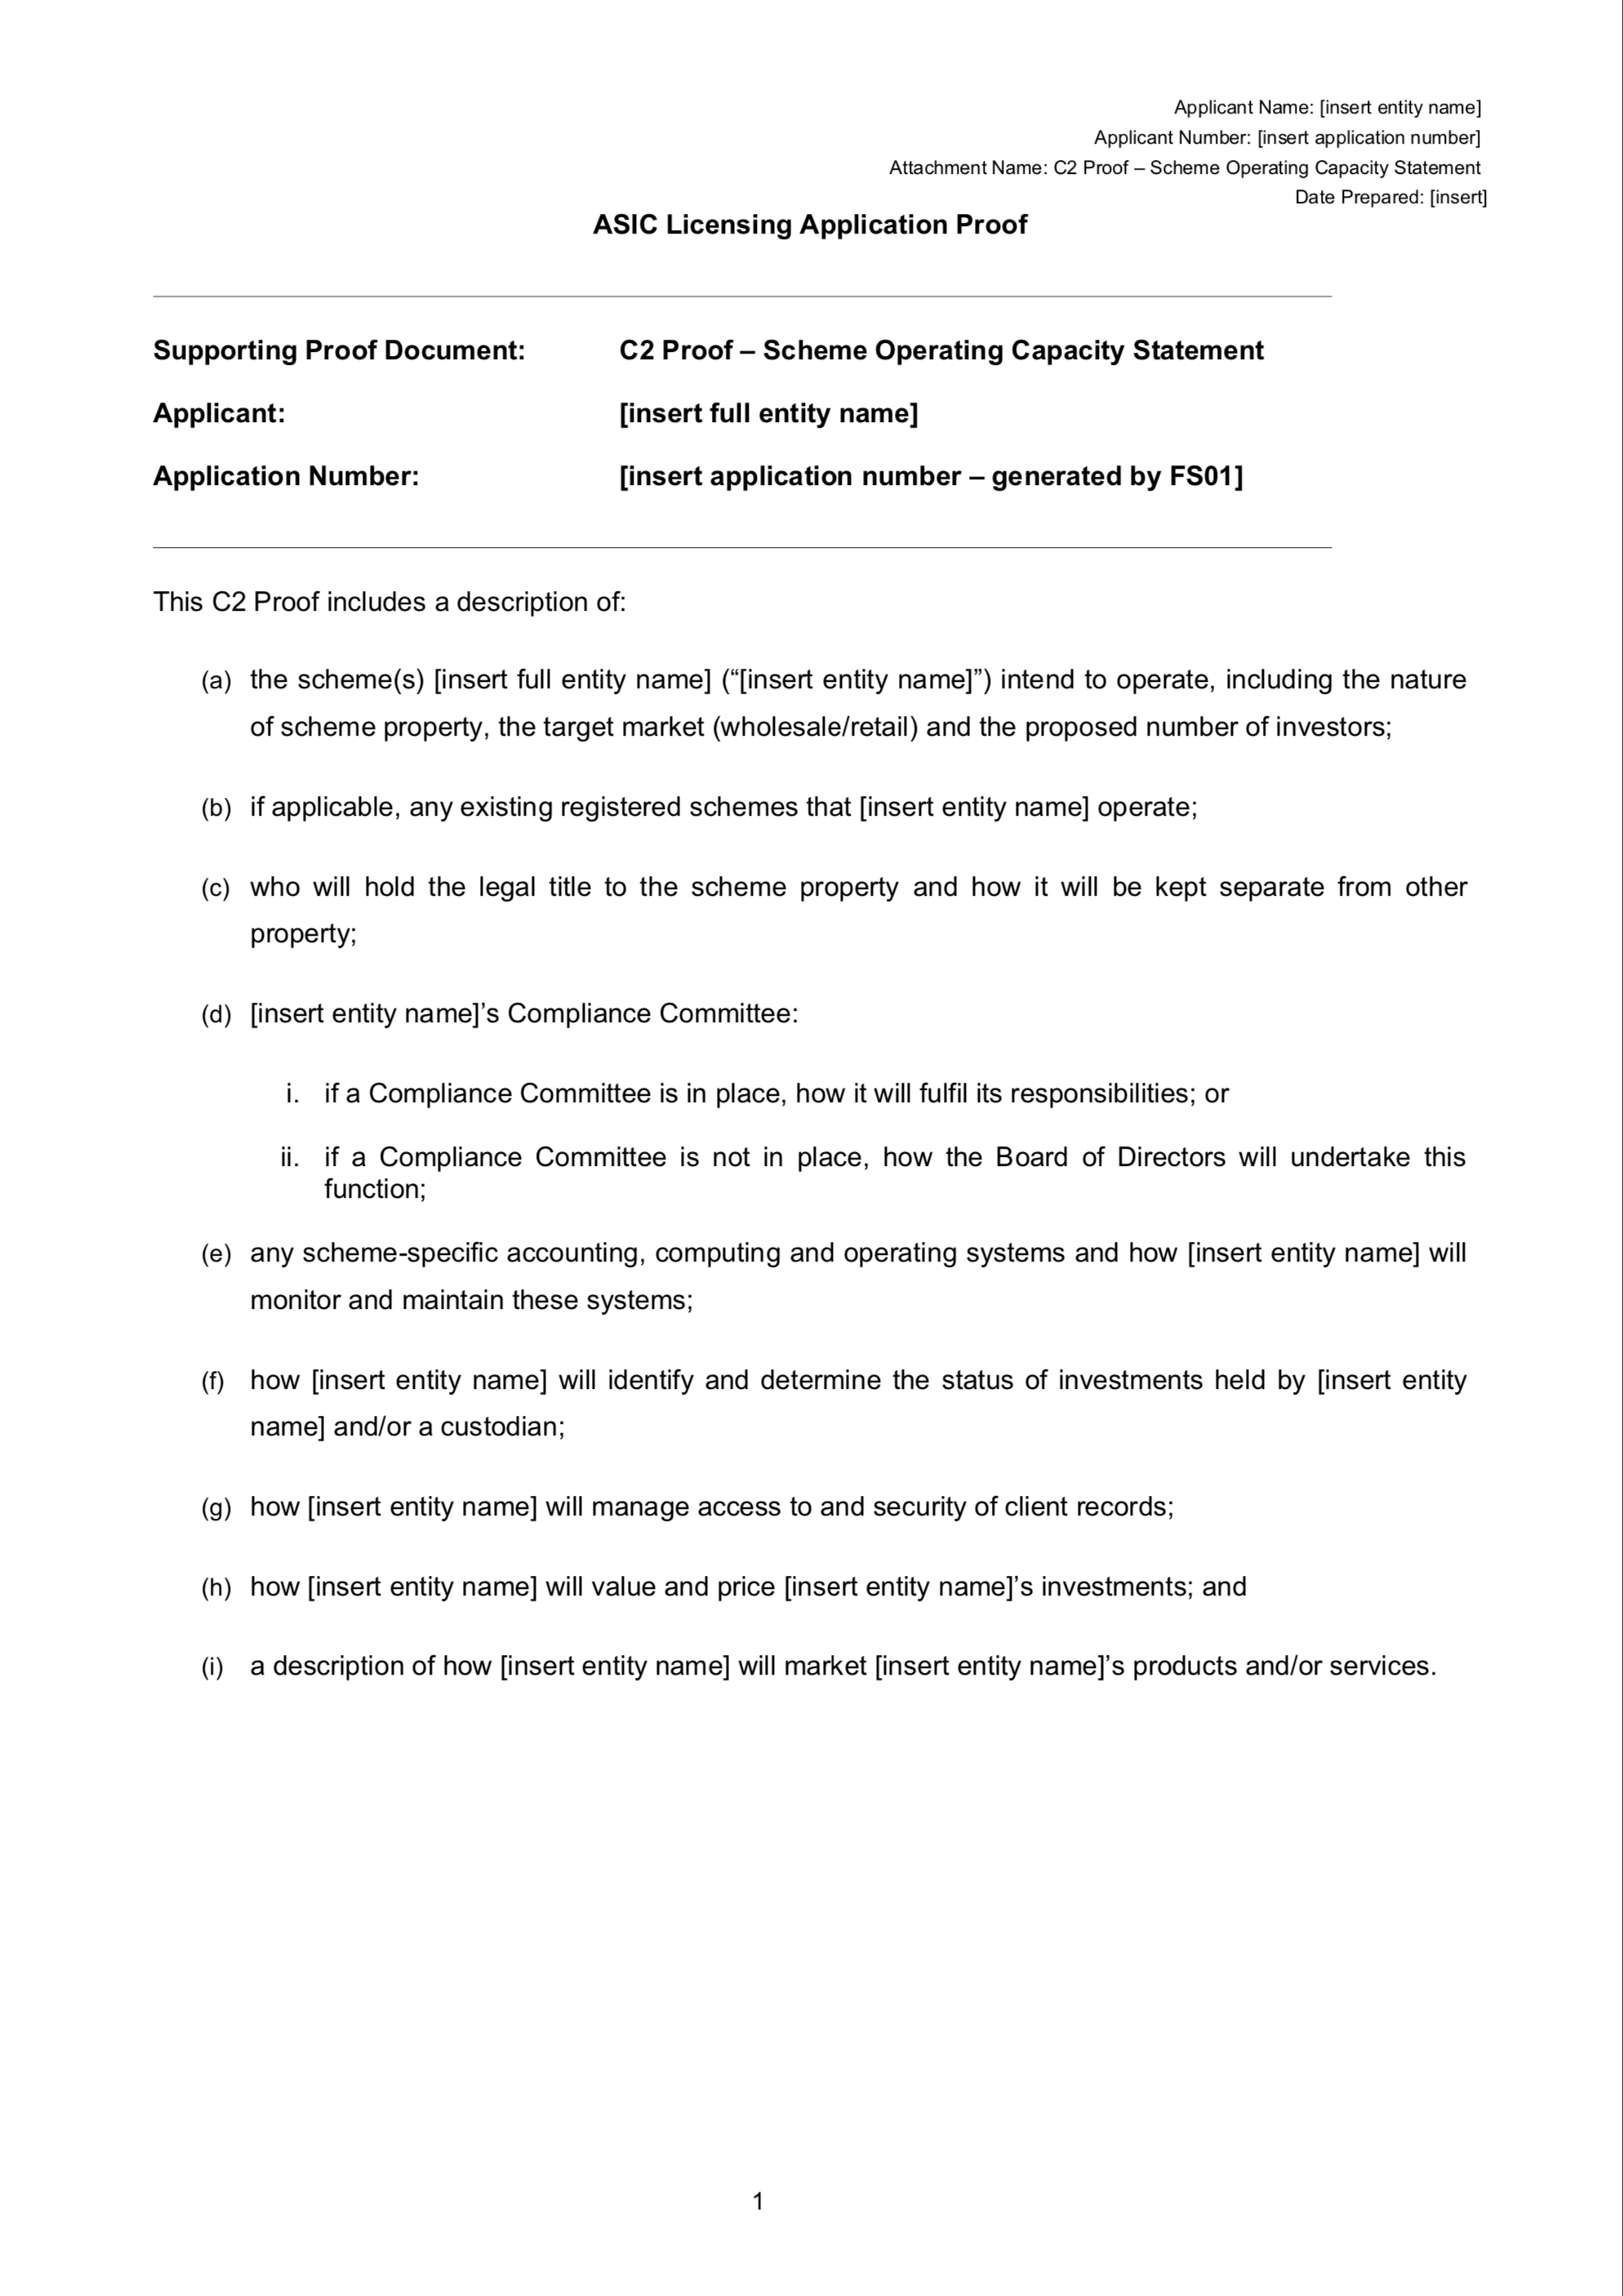 Afsl C2 Proof Template Scheme Operating Capacity Statement Sophie Grace